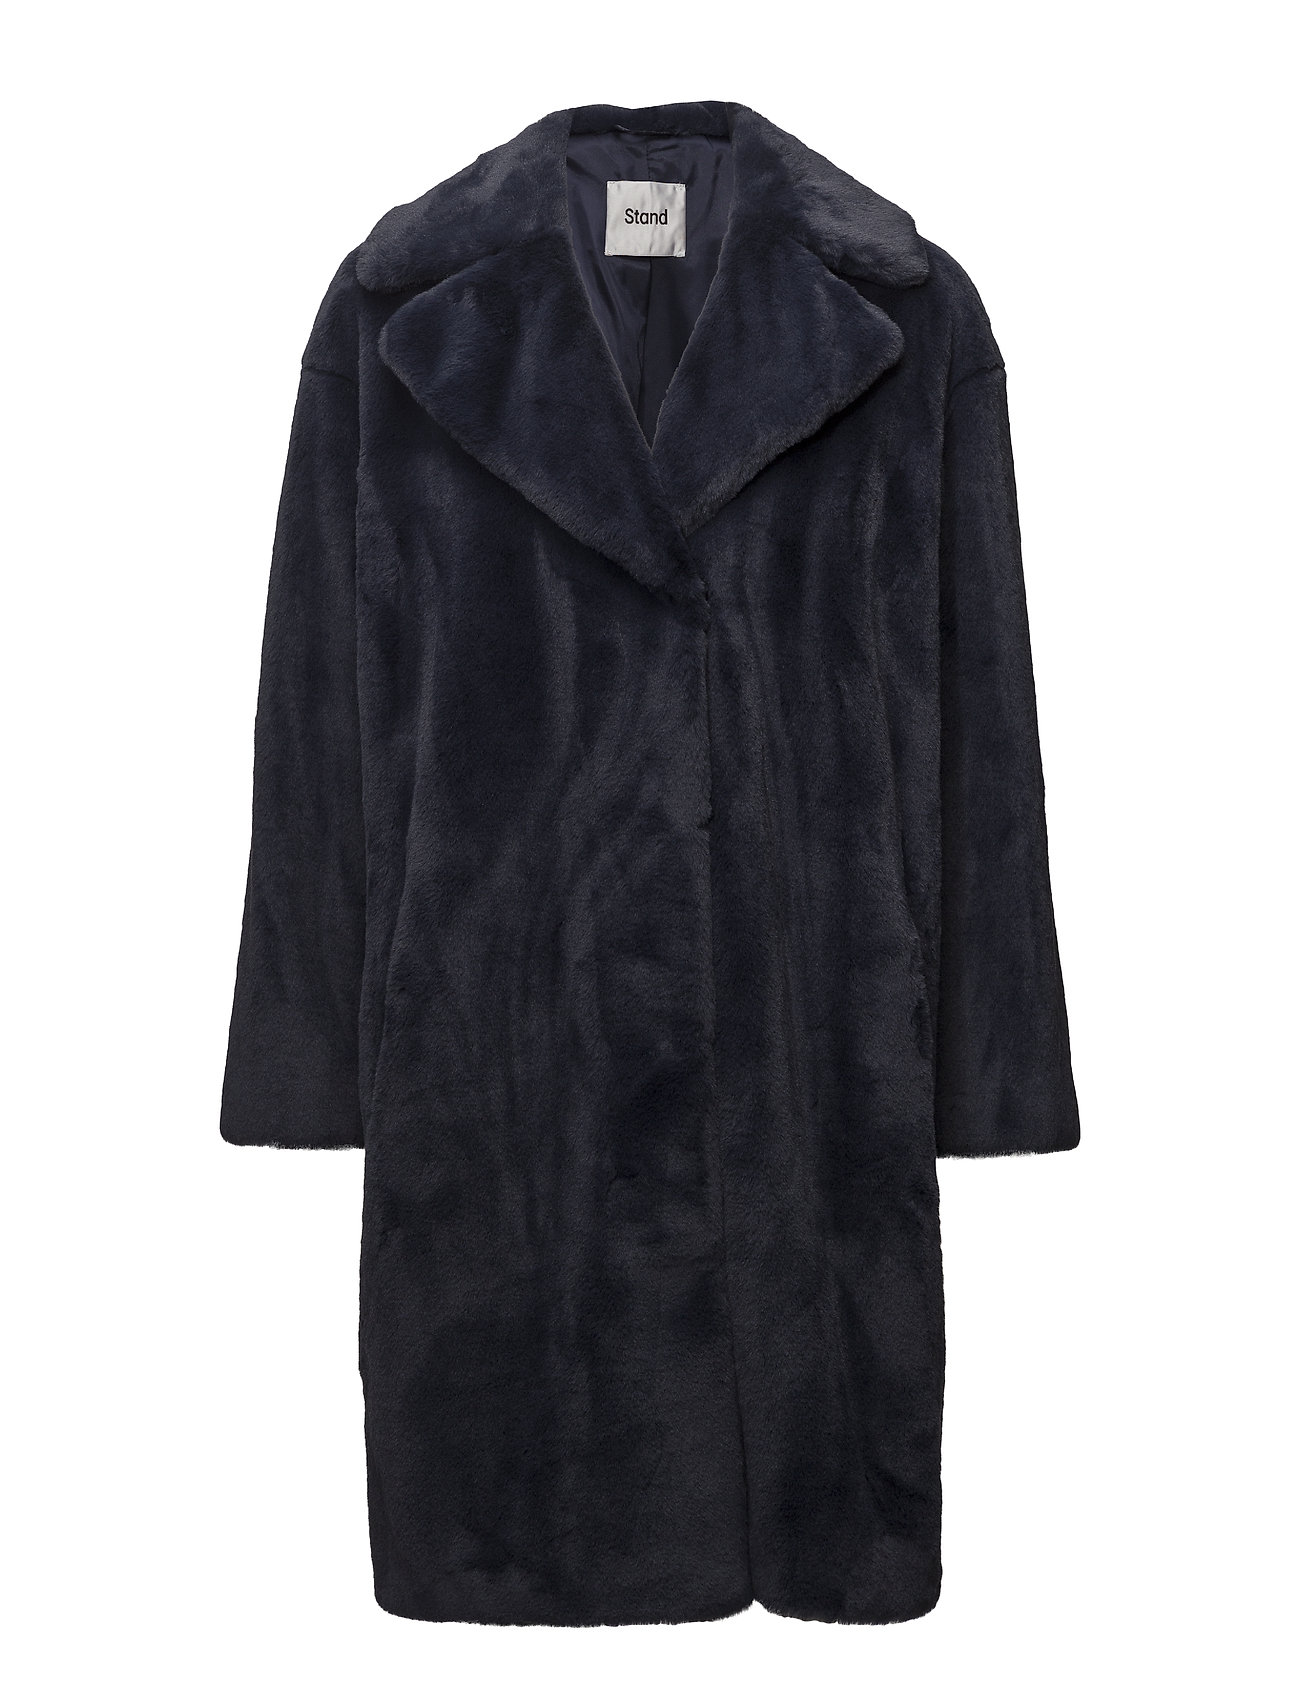 Image of Camille Coocon Coat (3073371221)